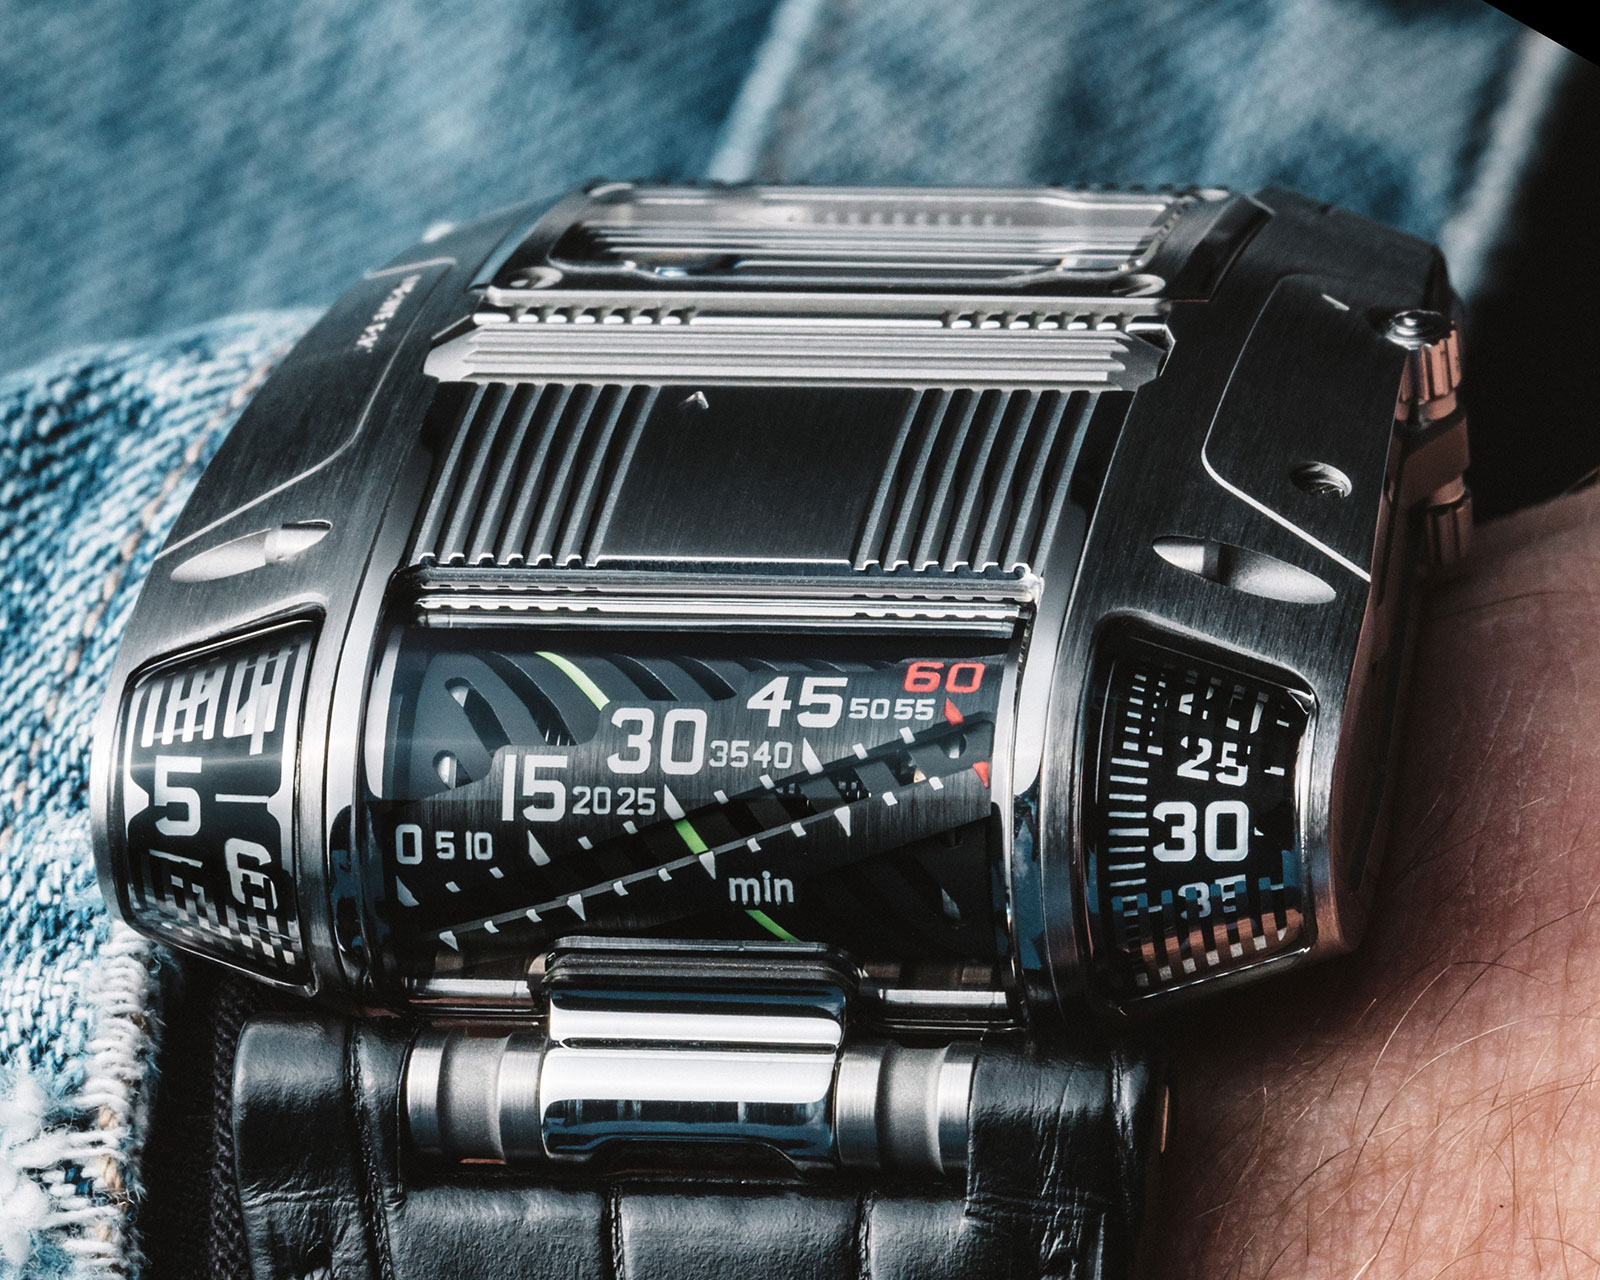 Urwerk UR-111C watch 5